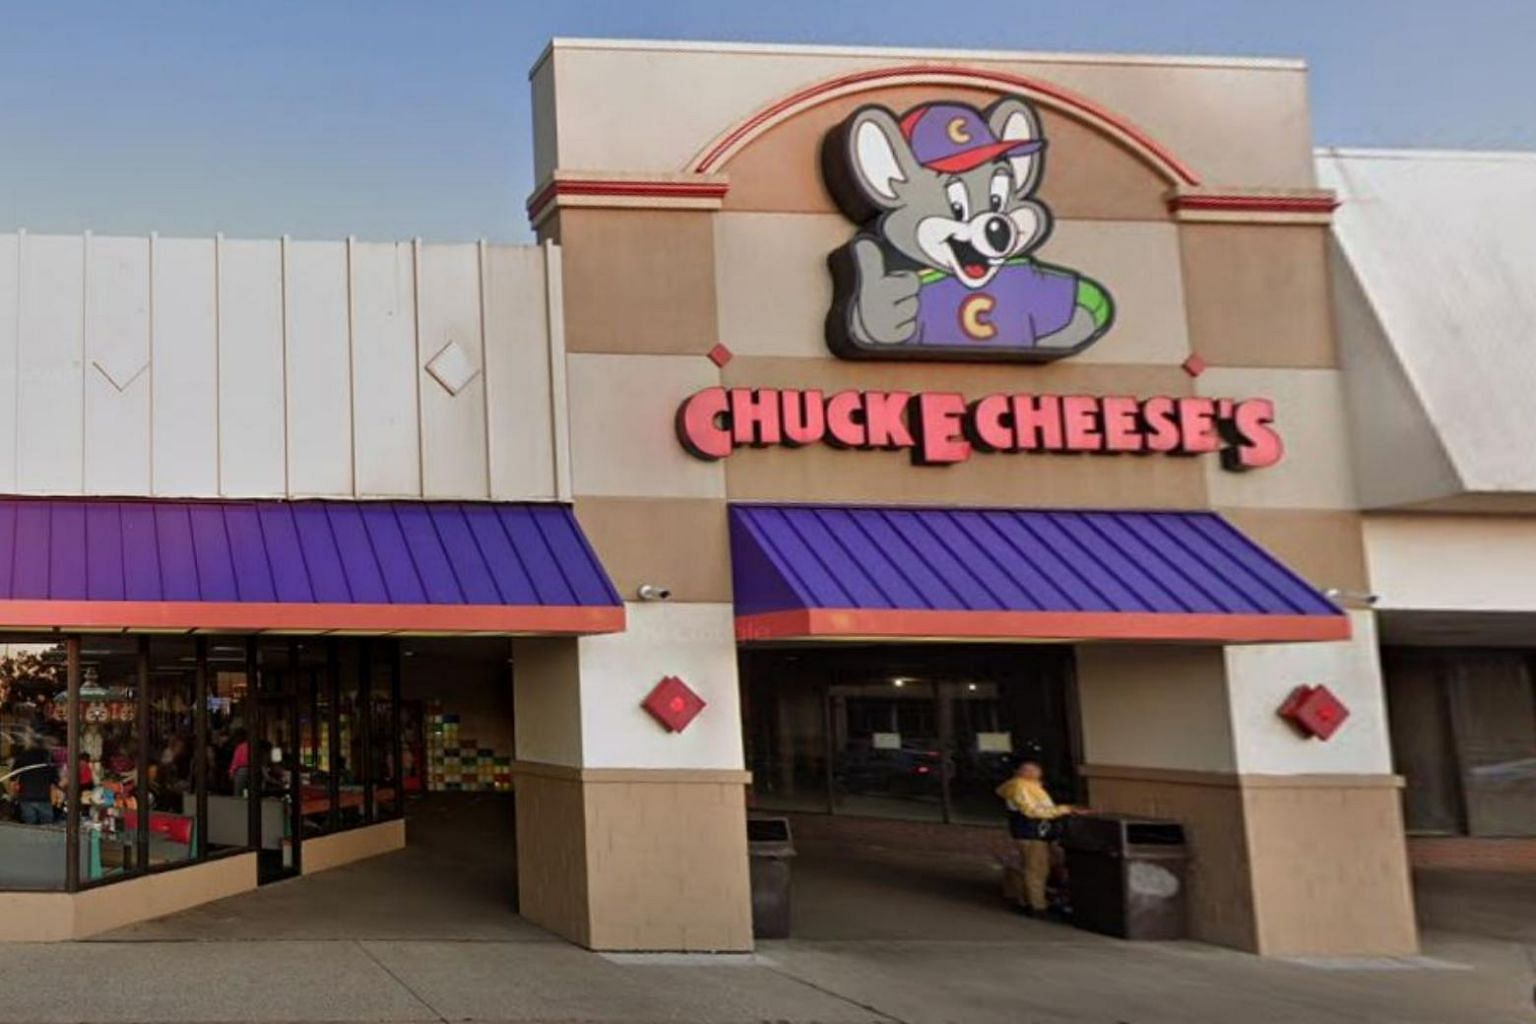 Chuck E Cheese Parent Files For Bankruptcy Another Casualty Of Pandemic Companies Markets News Top Stories The Straits Times Nightmare video for you guys. chuck e cheese parent files for